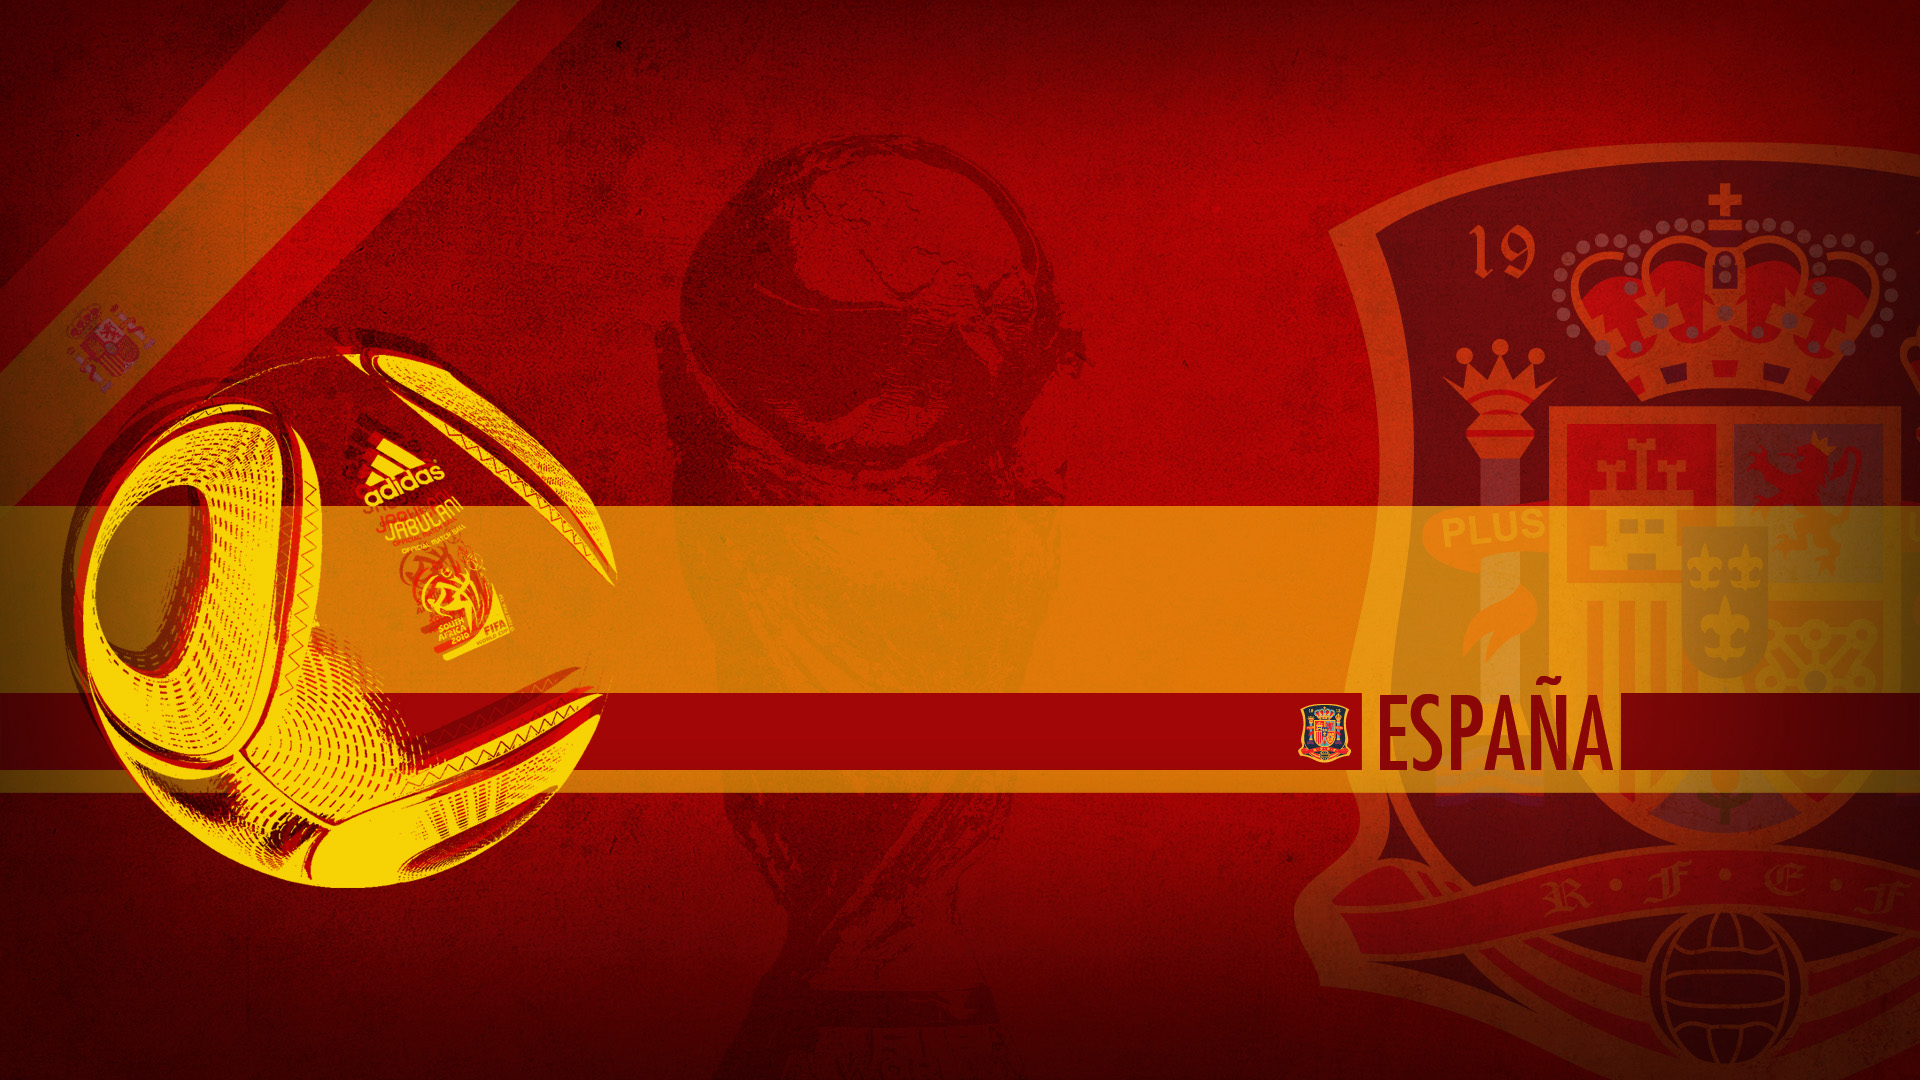 Spain Football Wallpaper